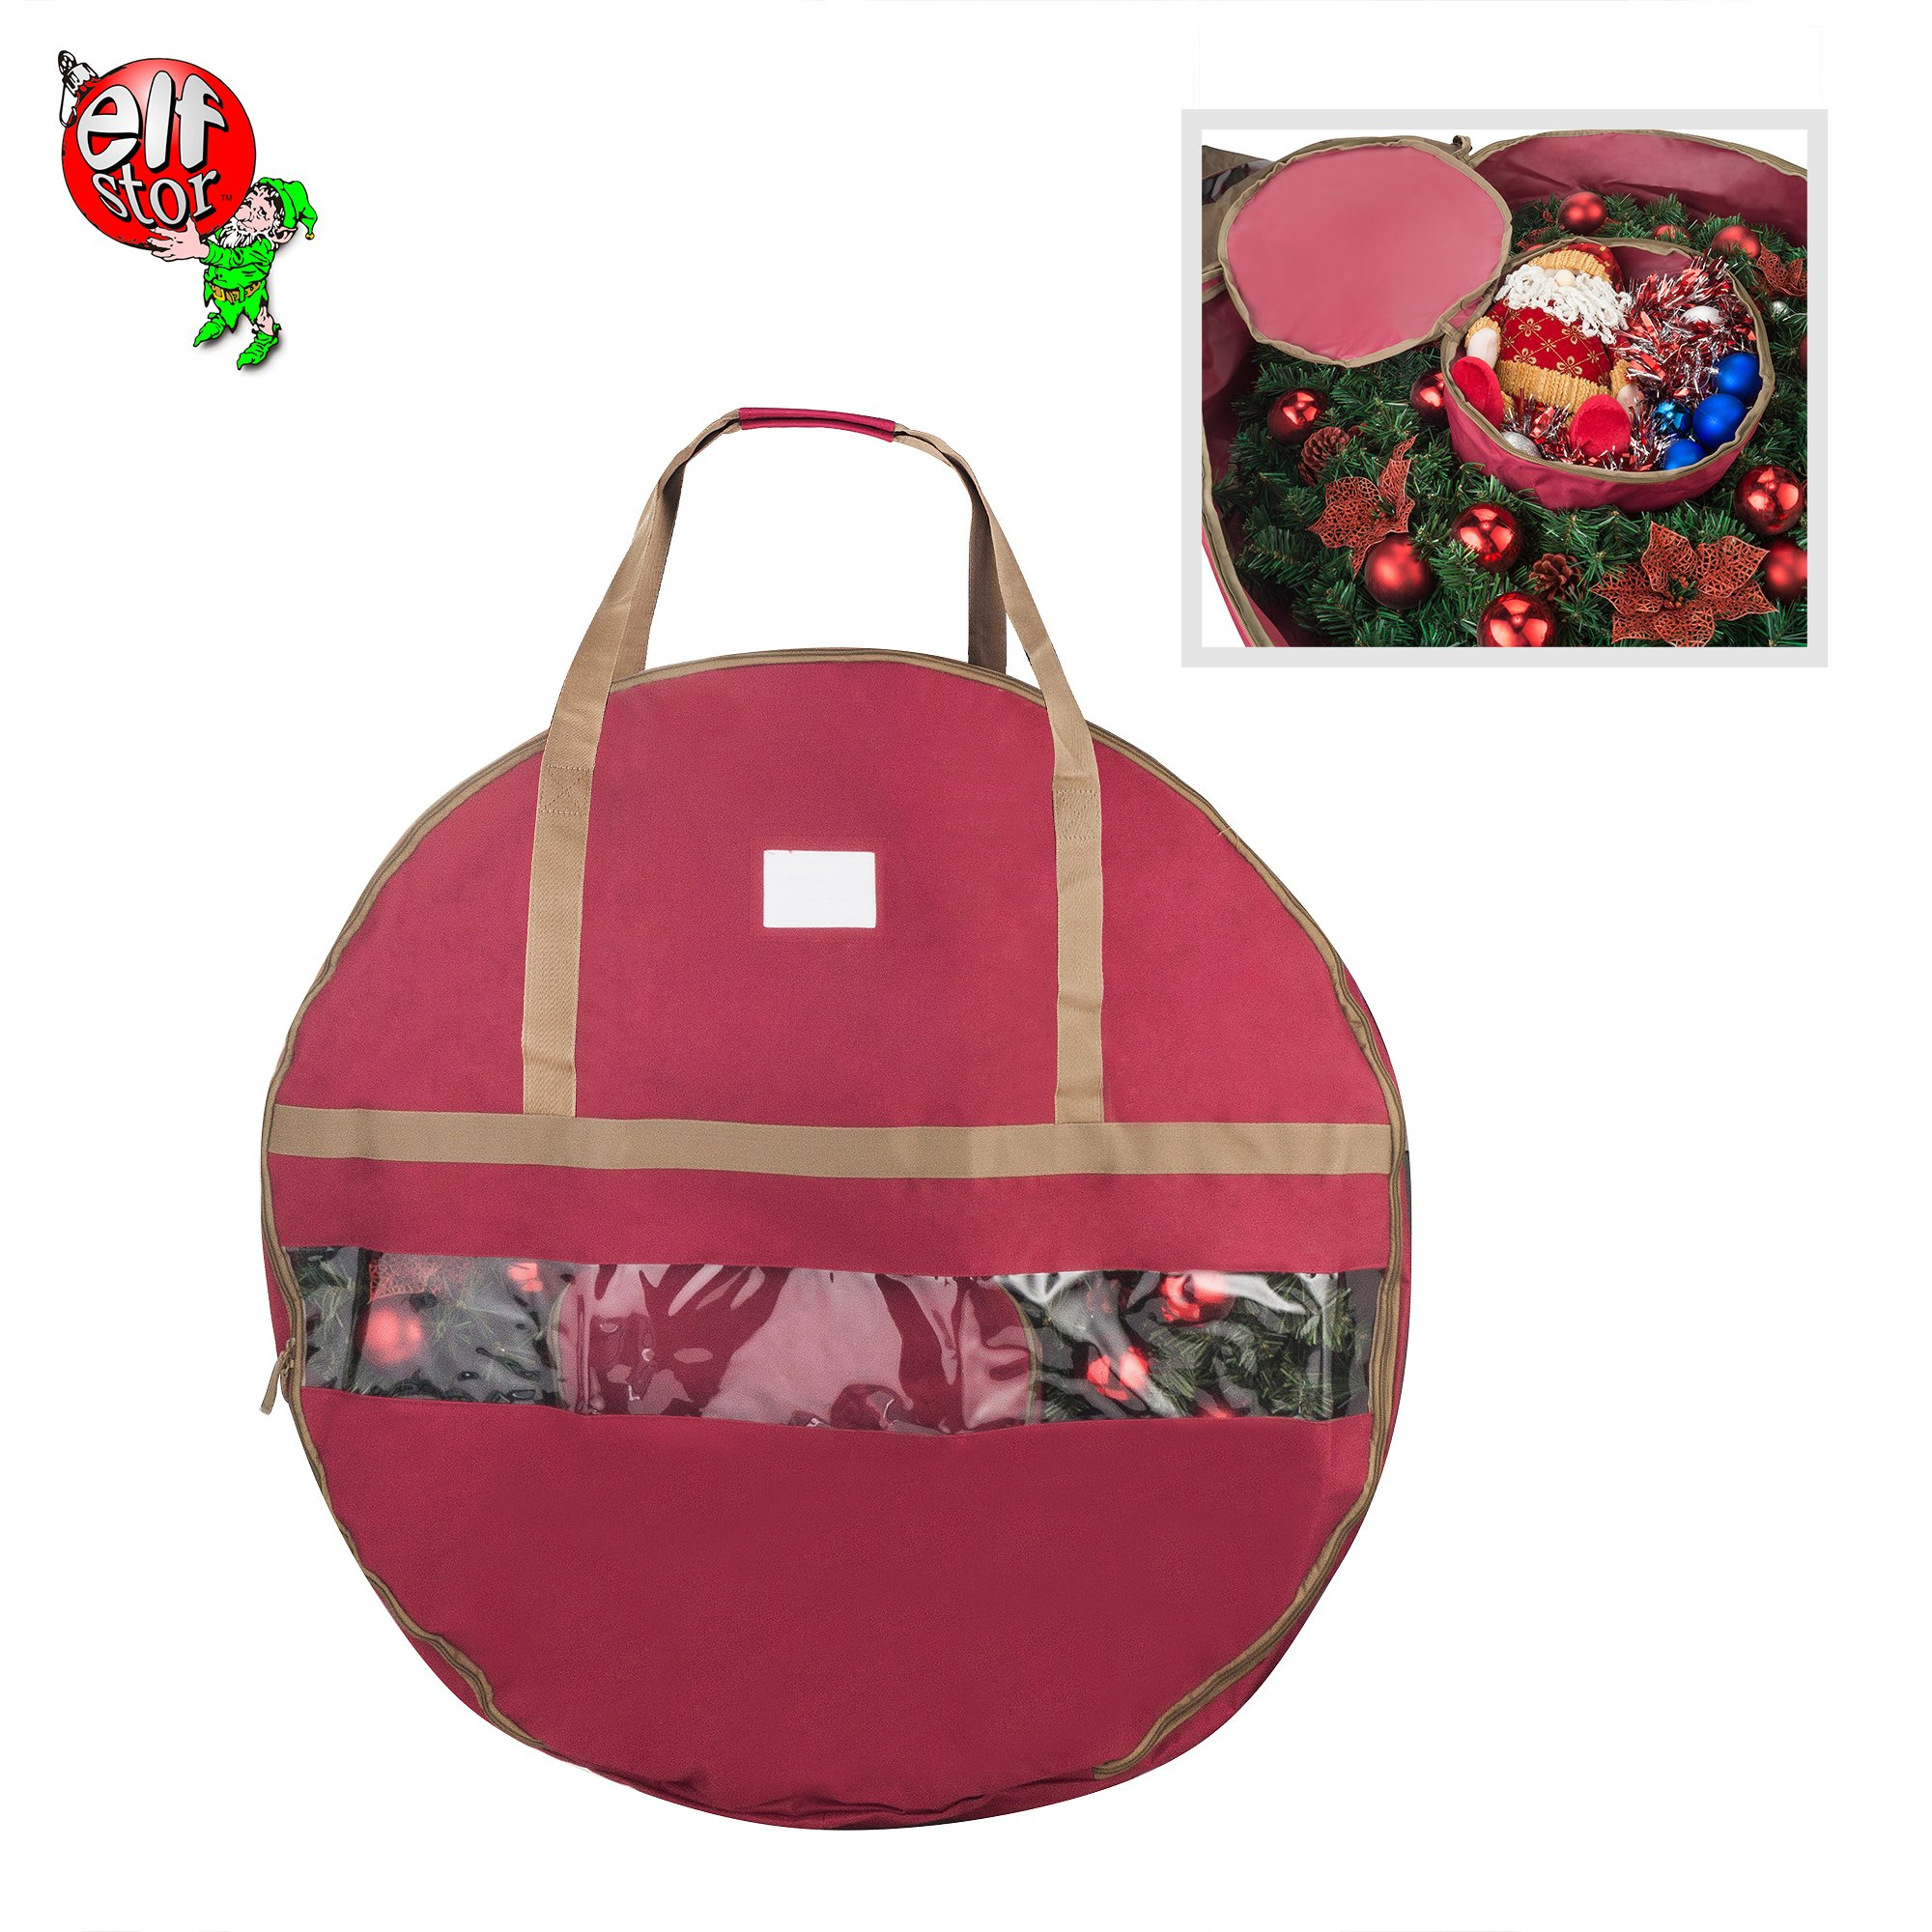 Elf Stor 83-DT5167 Ultimate Red Holiday Christmas Storage Bag for 48'' Inch Wreaths by Elf Stor